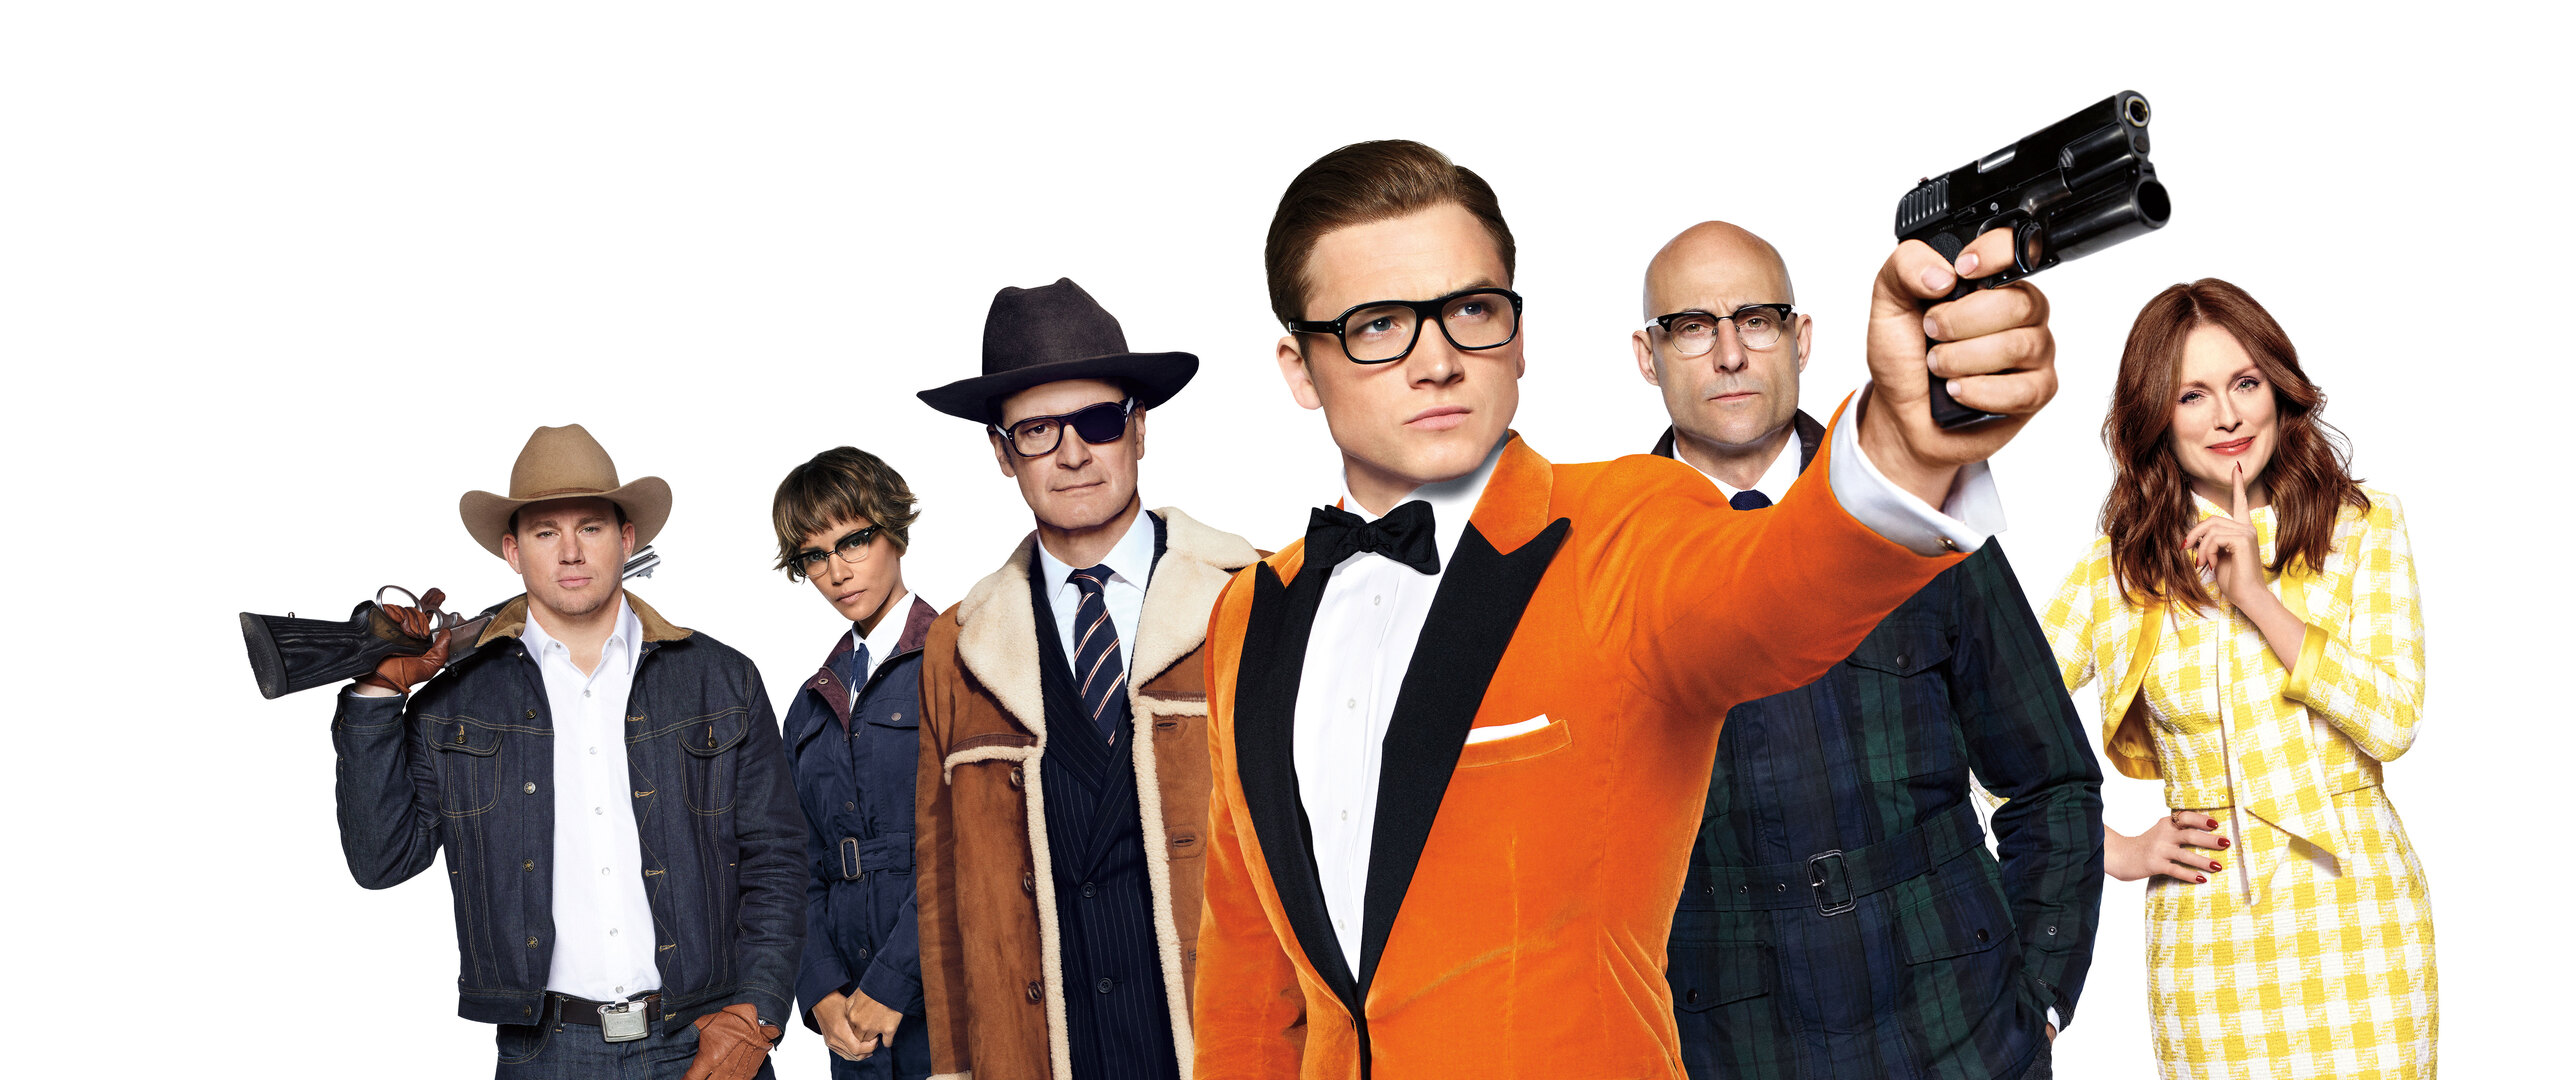 kingsman-the-golden-circle-8k-t4.jpg